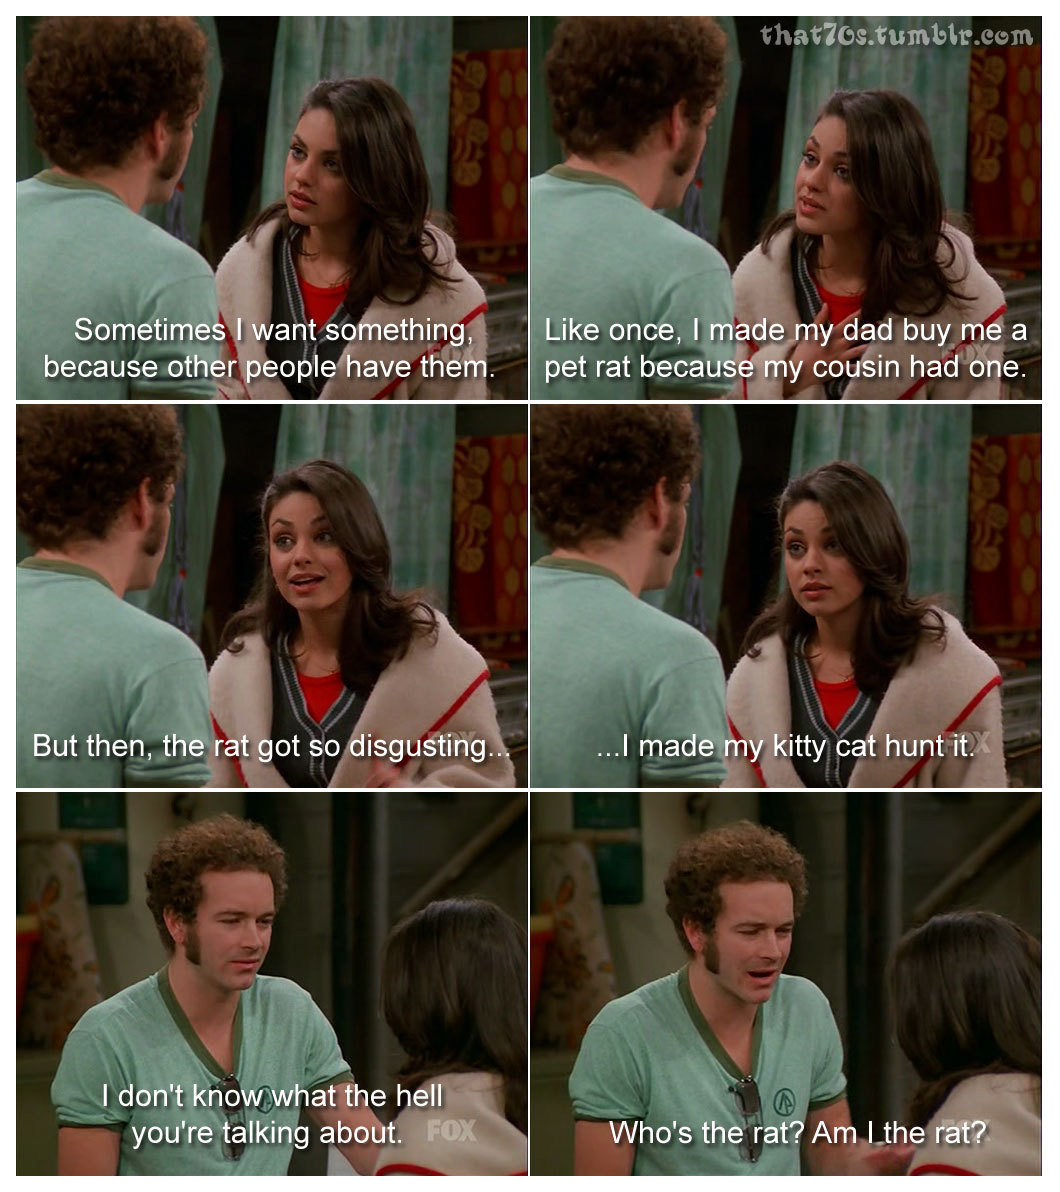 That 70s show donna and eric get engaged images - tattoos on wrists tumblr wallpapers